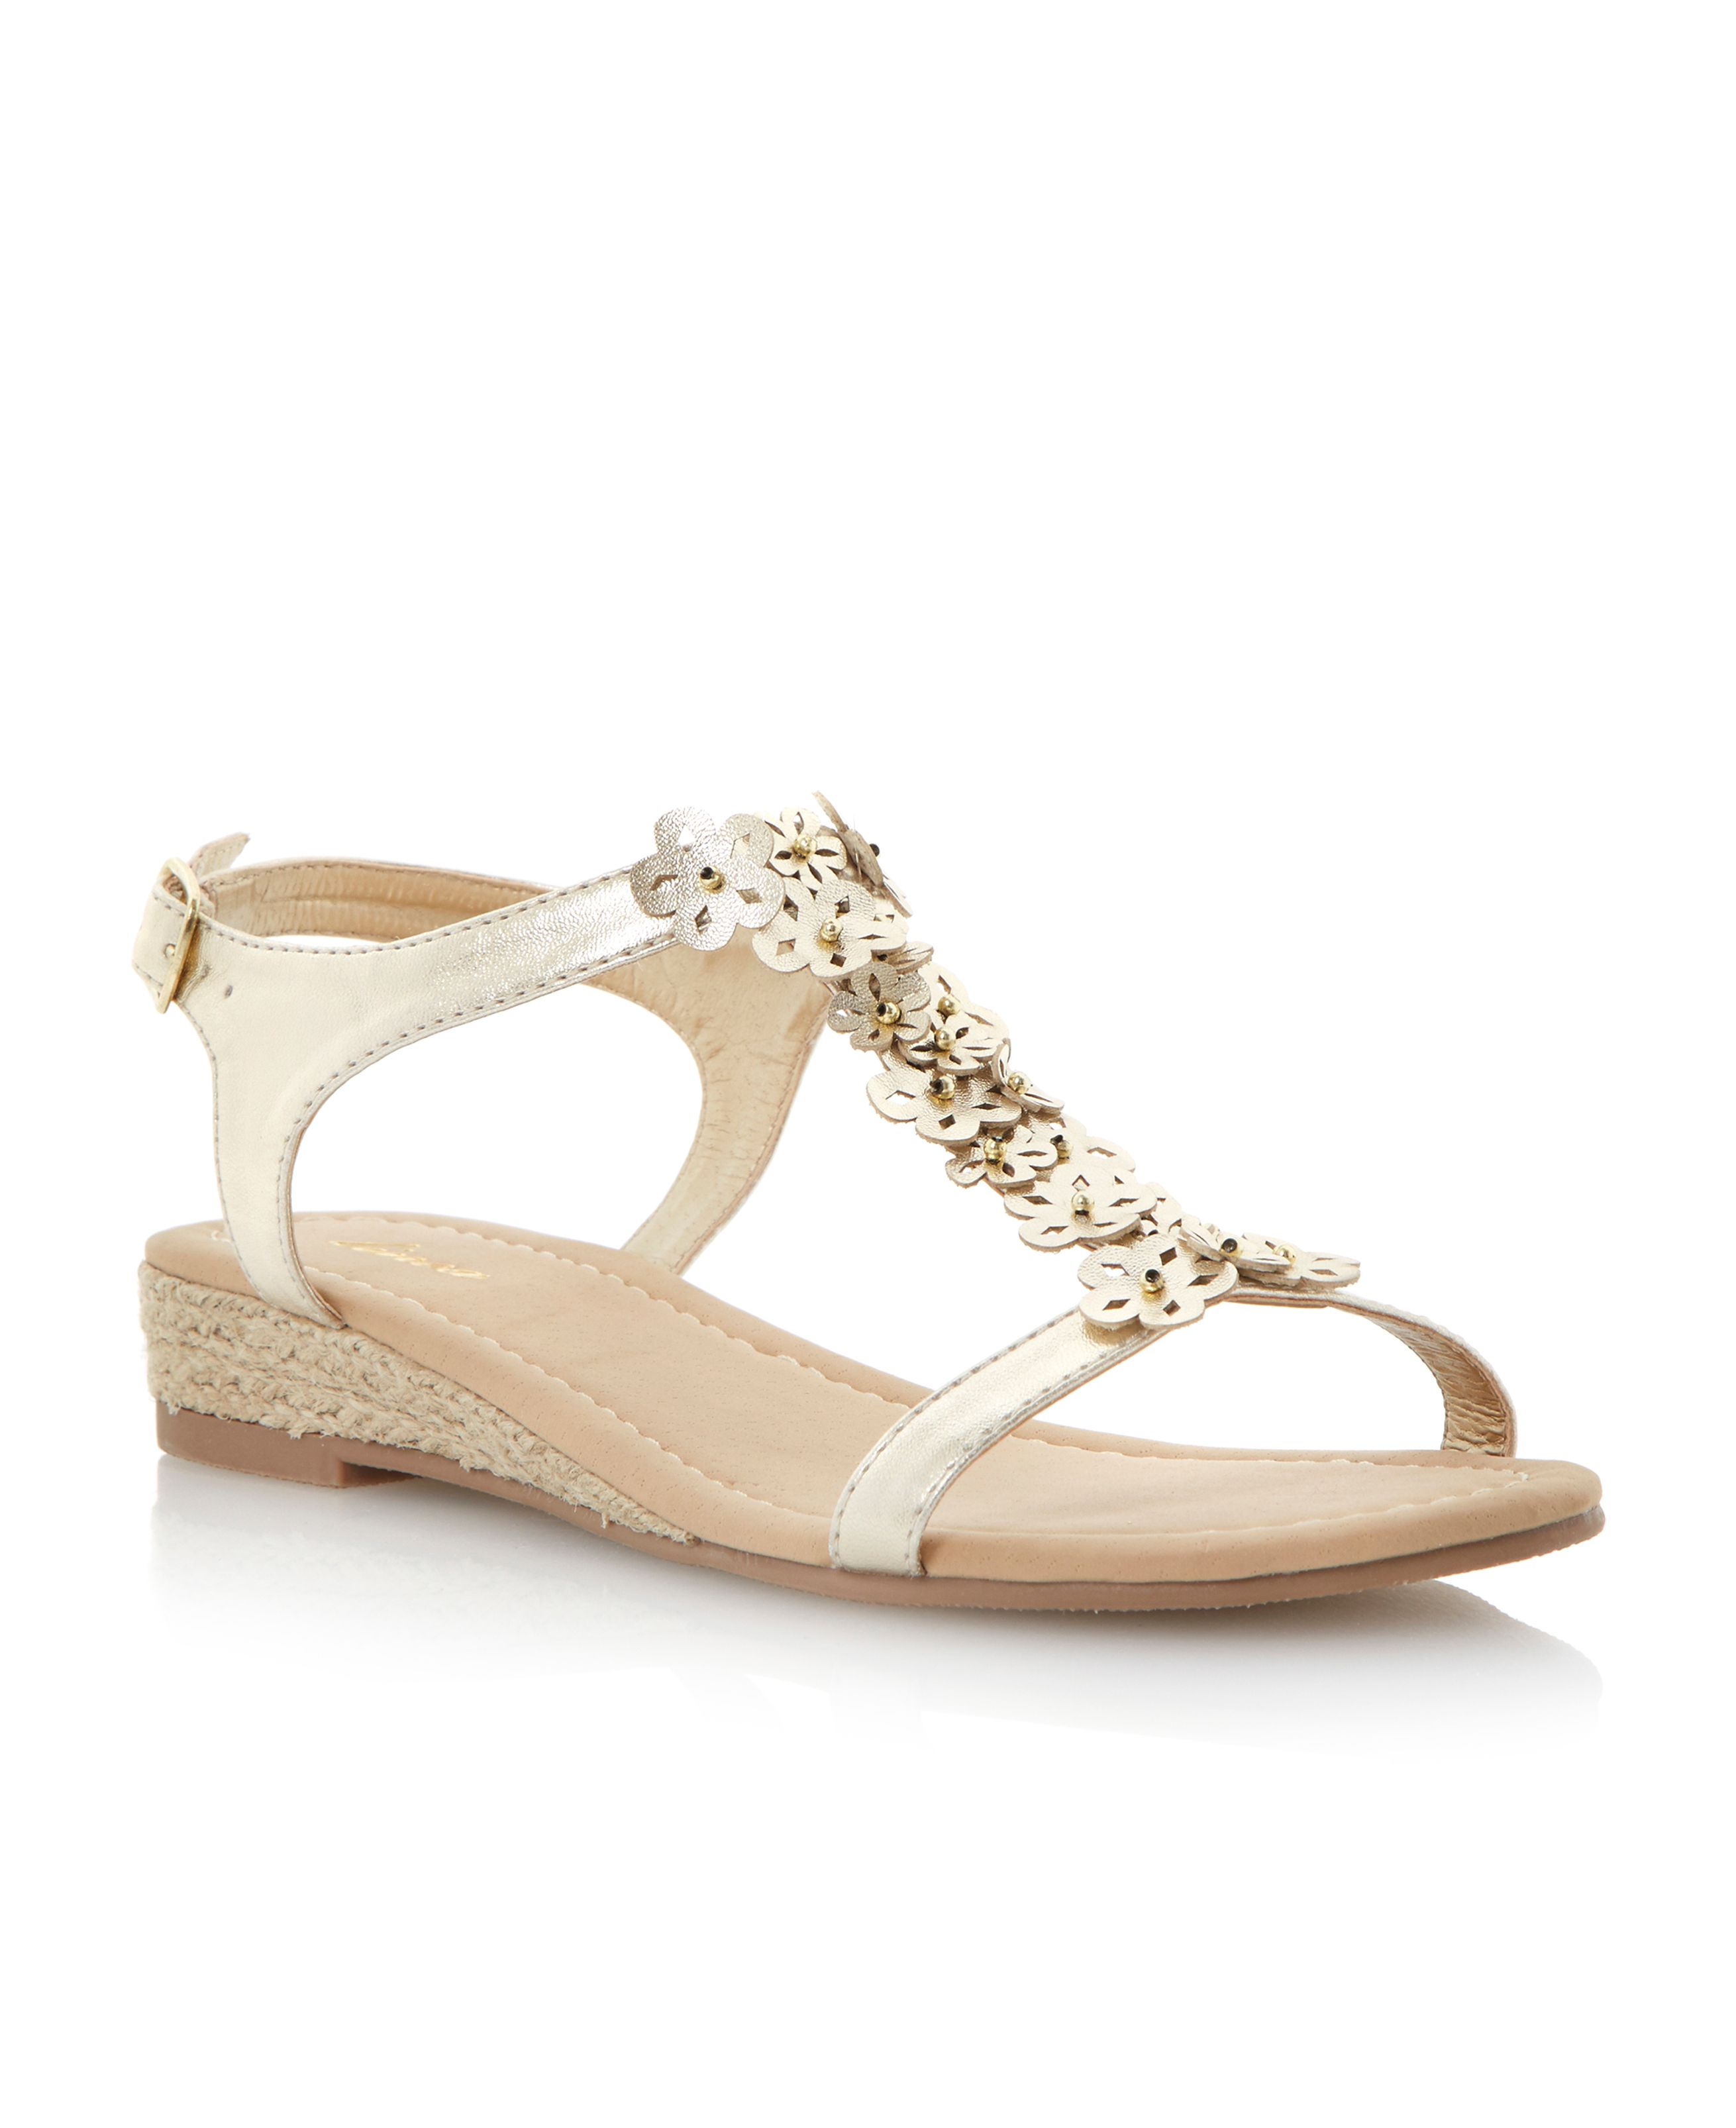 Glower metallic wedge embellished sandals